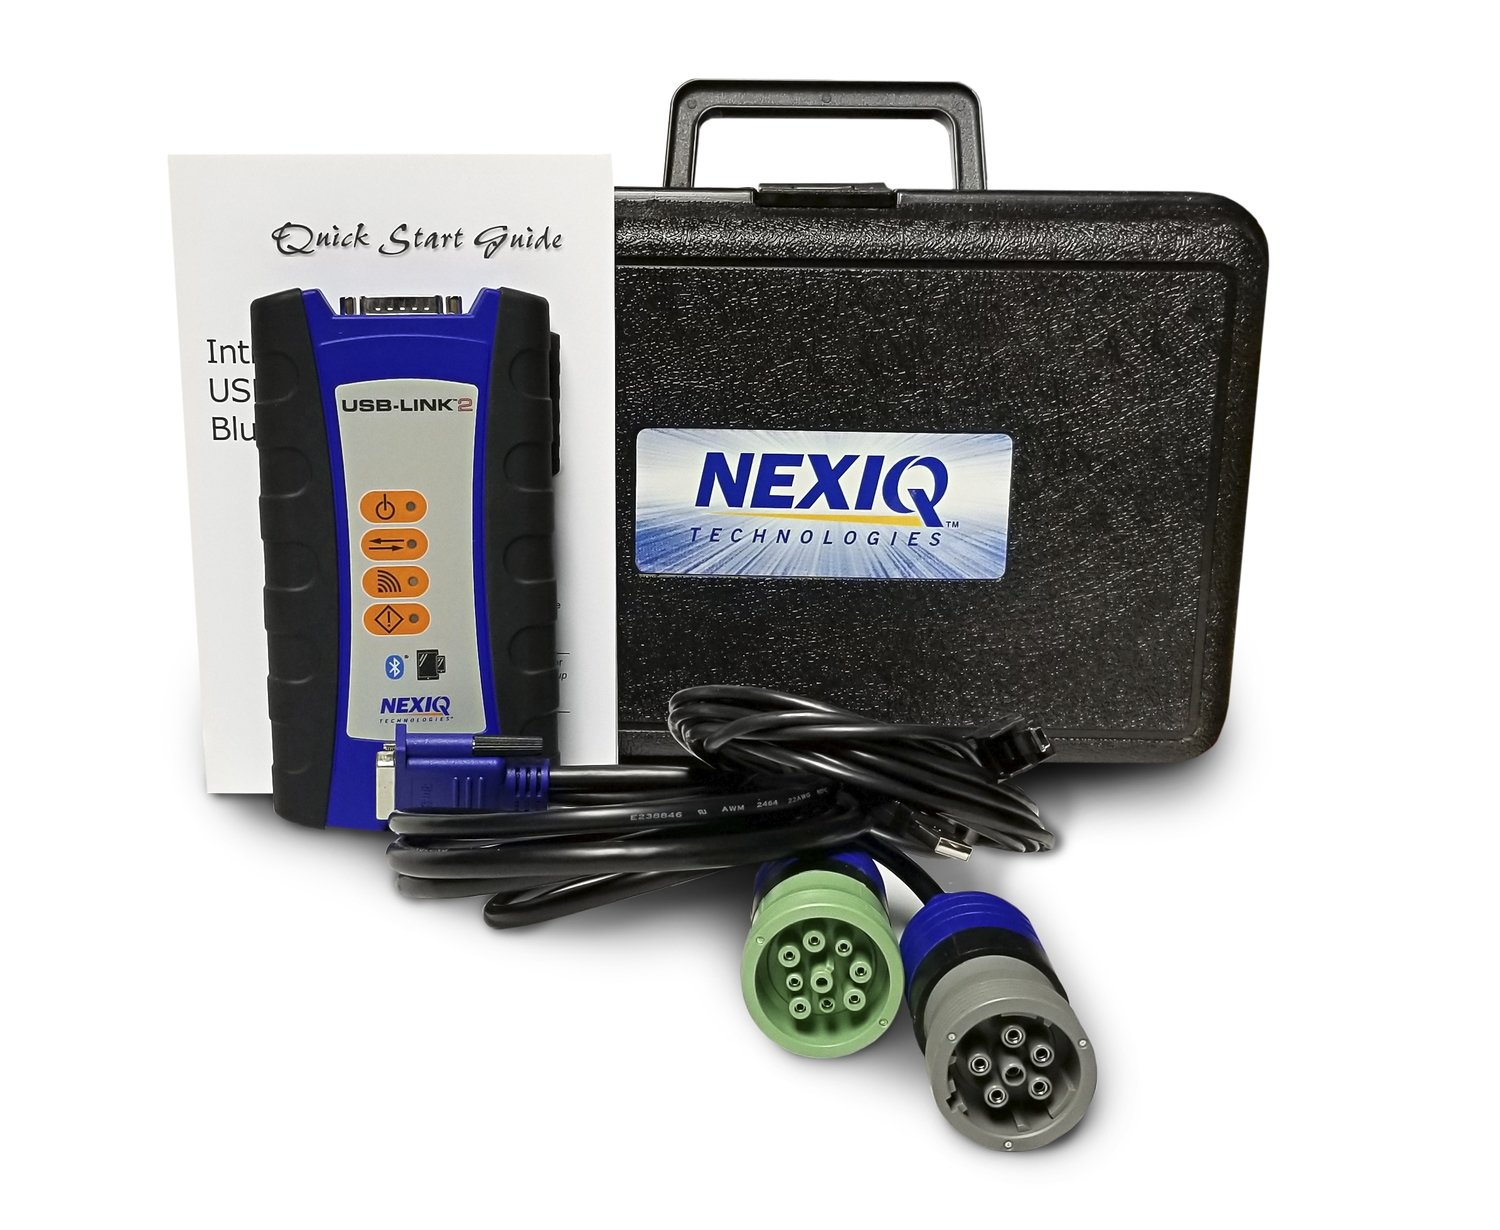 NexIQ USB-Link 2: Bluetooth Edition